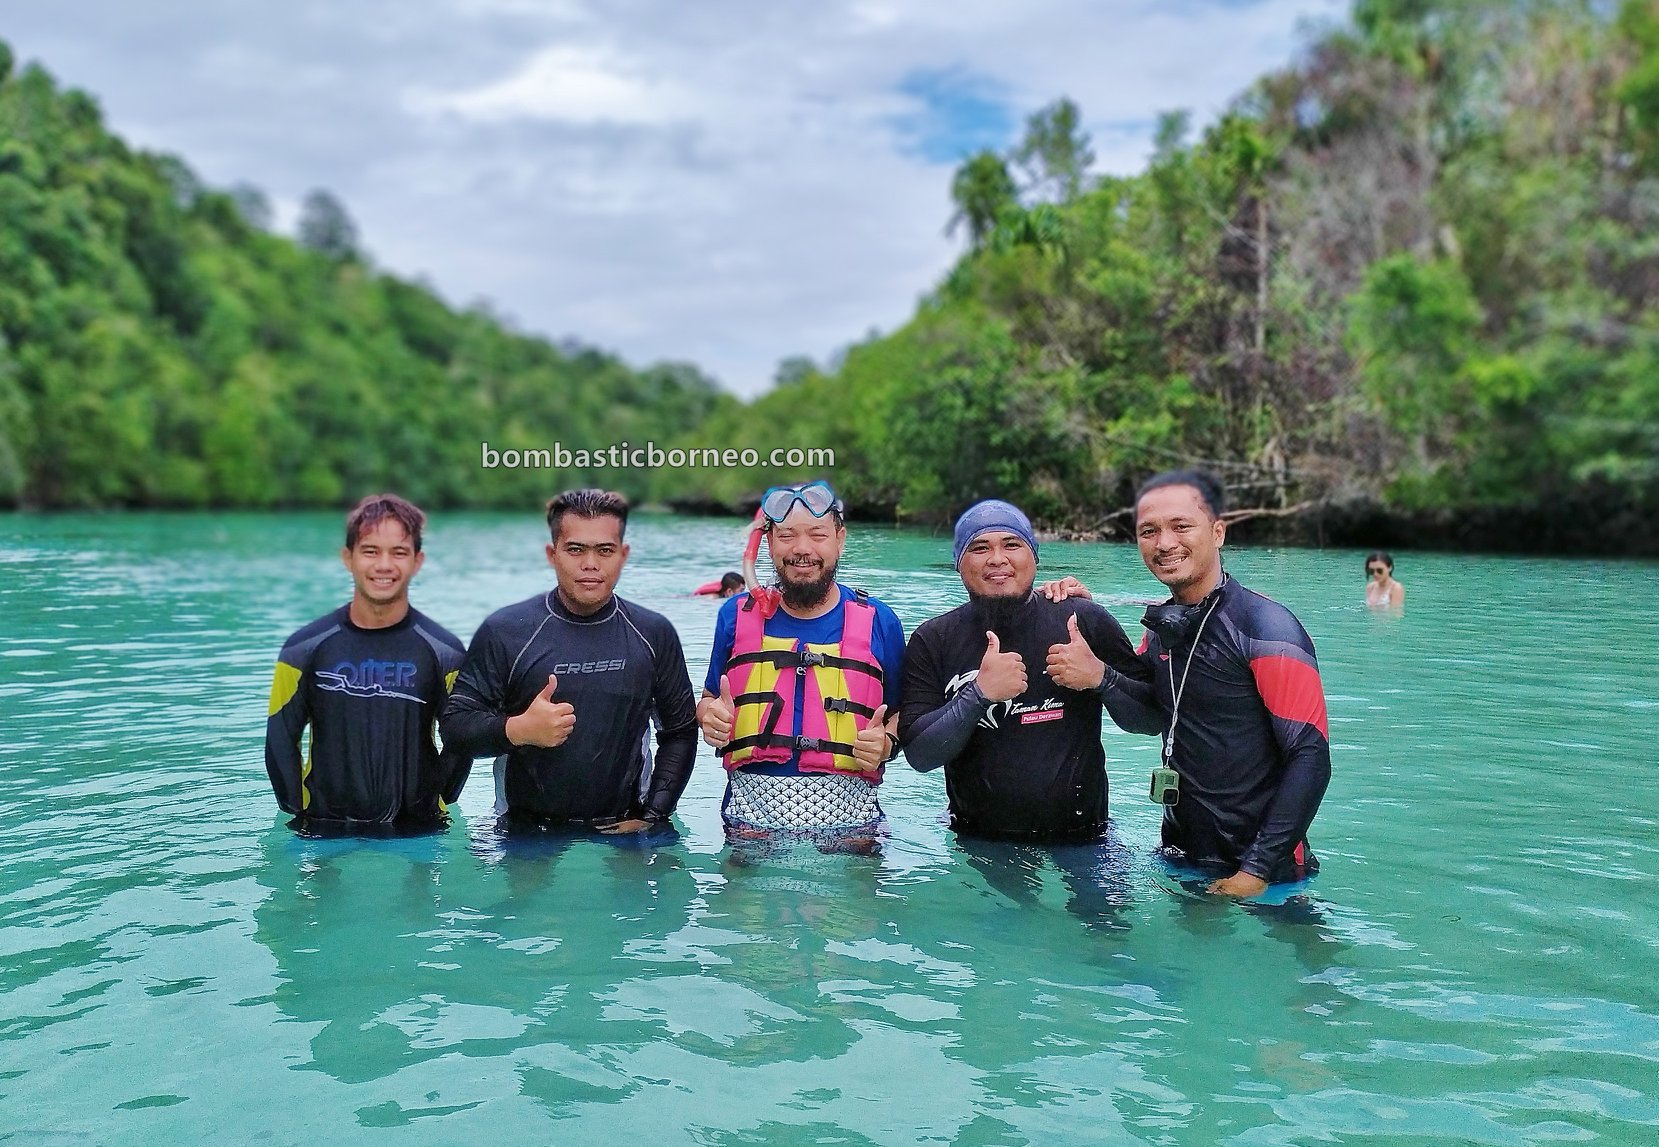 Emerald Pool, Lobang Ikan, Kakaban Island, nature, destination, Snorkelling, holiday, Berau, Pesona Indonesia, wisata alam, Tourism, travel guide, Borneo, 印尼东加里曼丹, 卡卡班岛旅游景点